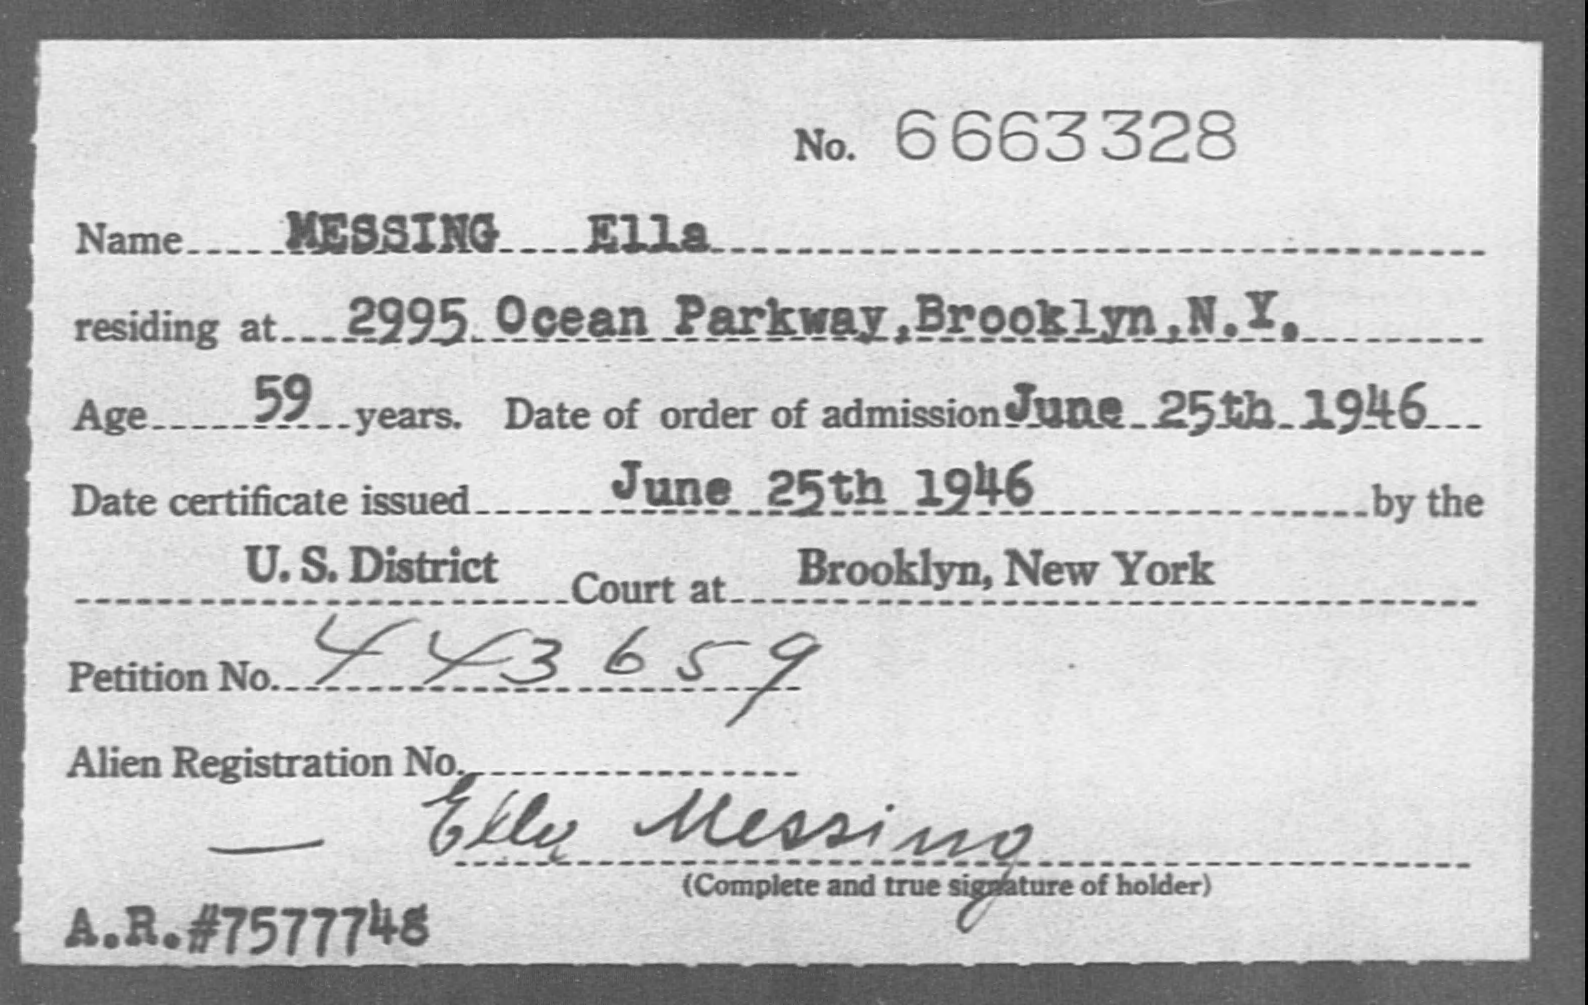 MESSING Ella - Born: [BLANK], Naturalized: 1946